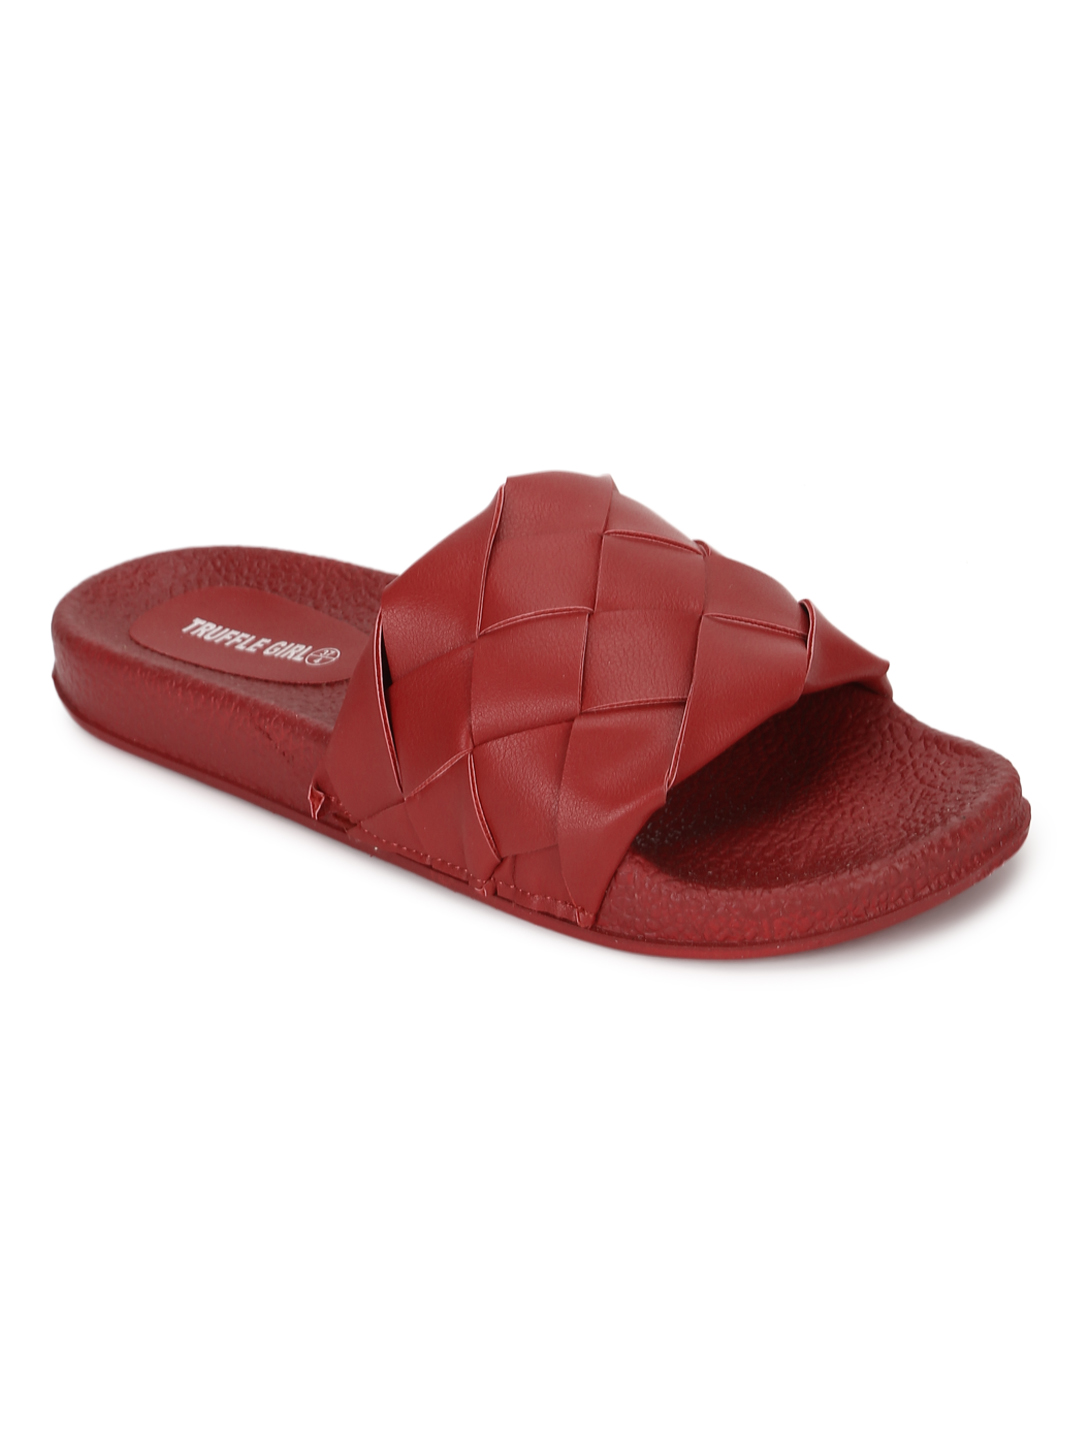 Truffle Collection | Truffle Collection Red PU Weaved Slides